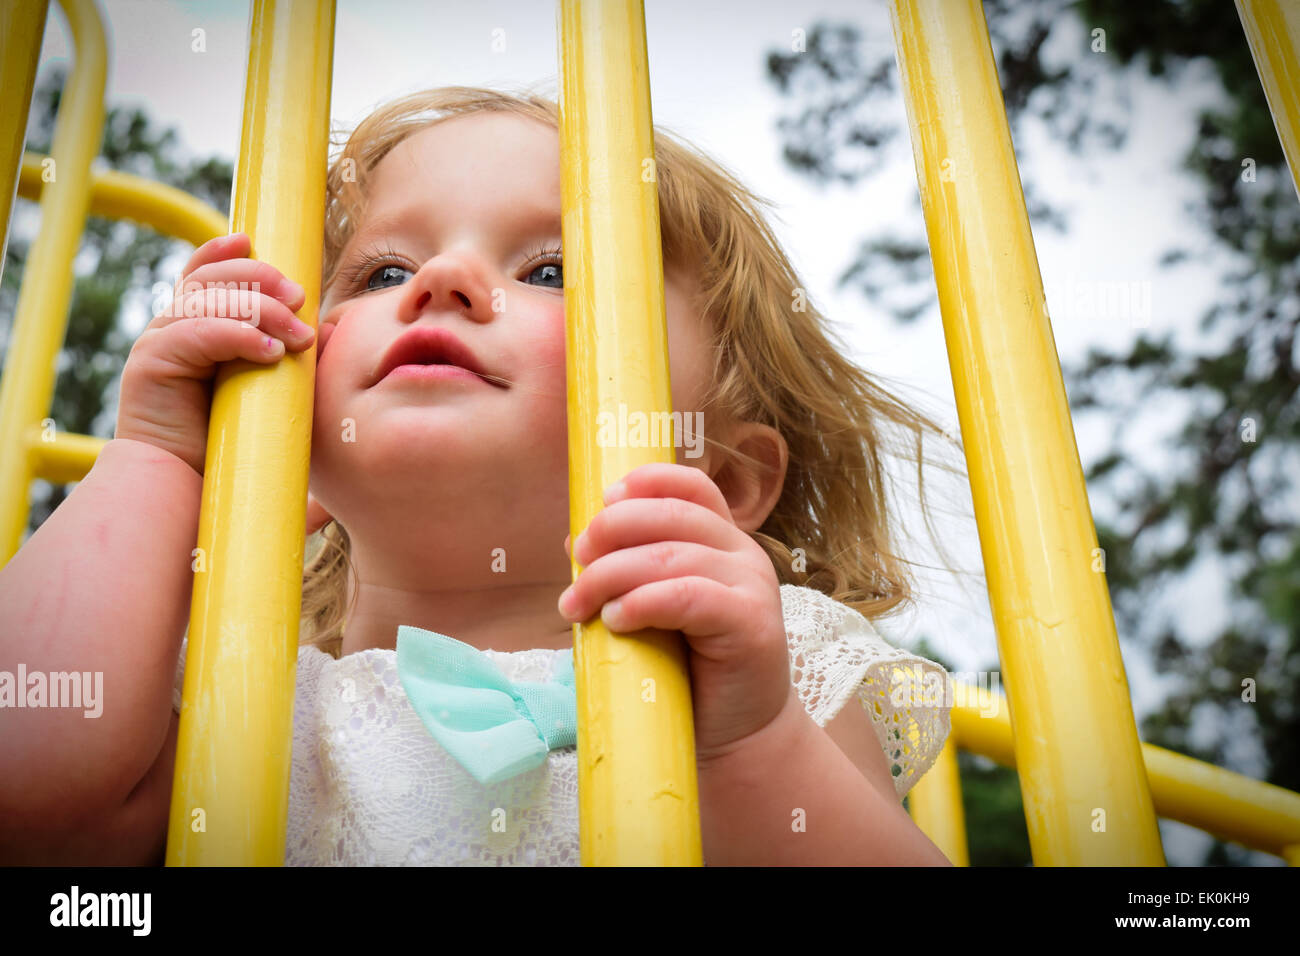 A small, blond toddler peeking through the bars of a jungle gym at a park playground. - Stock Image